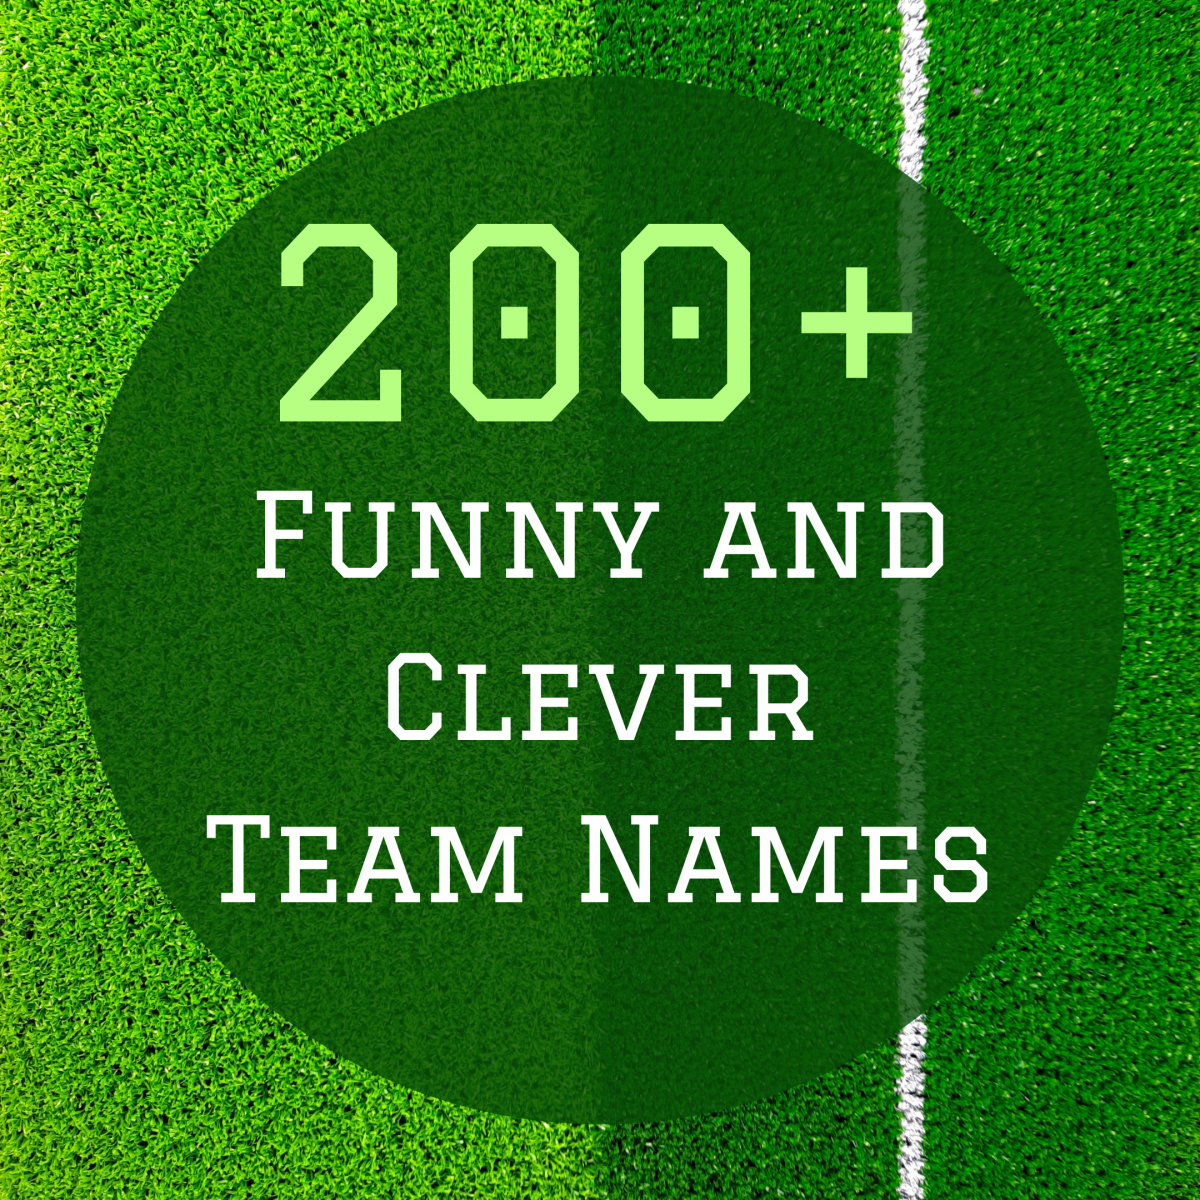 Team spirit is a part of what makes sports so fun. Good team spirit starts with a great team name.